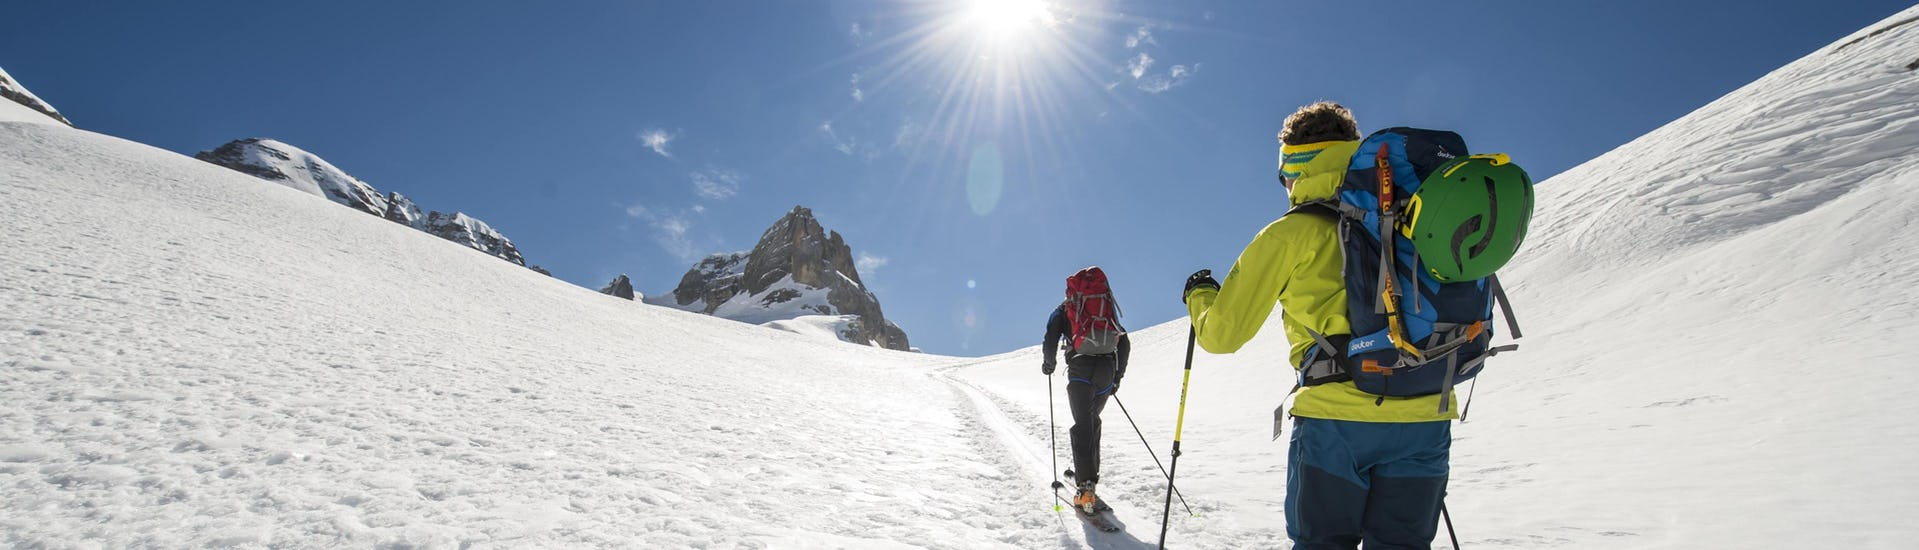 A ski touring guide is guiding another skier to the mountain summit while on a ski tour in the ski resort of Saas-Fee.